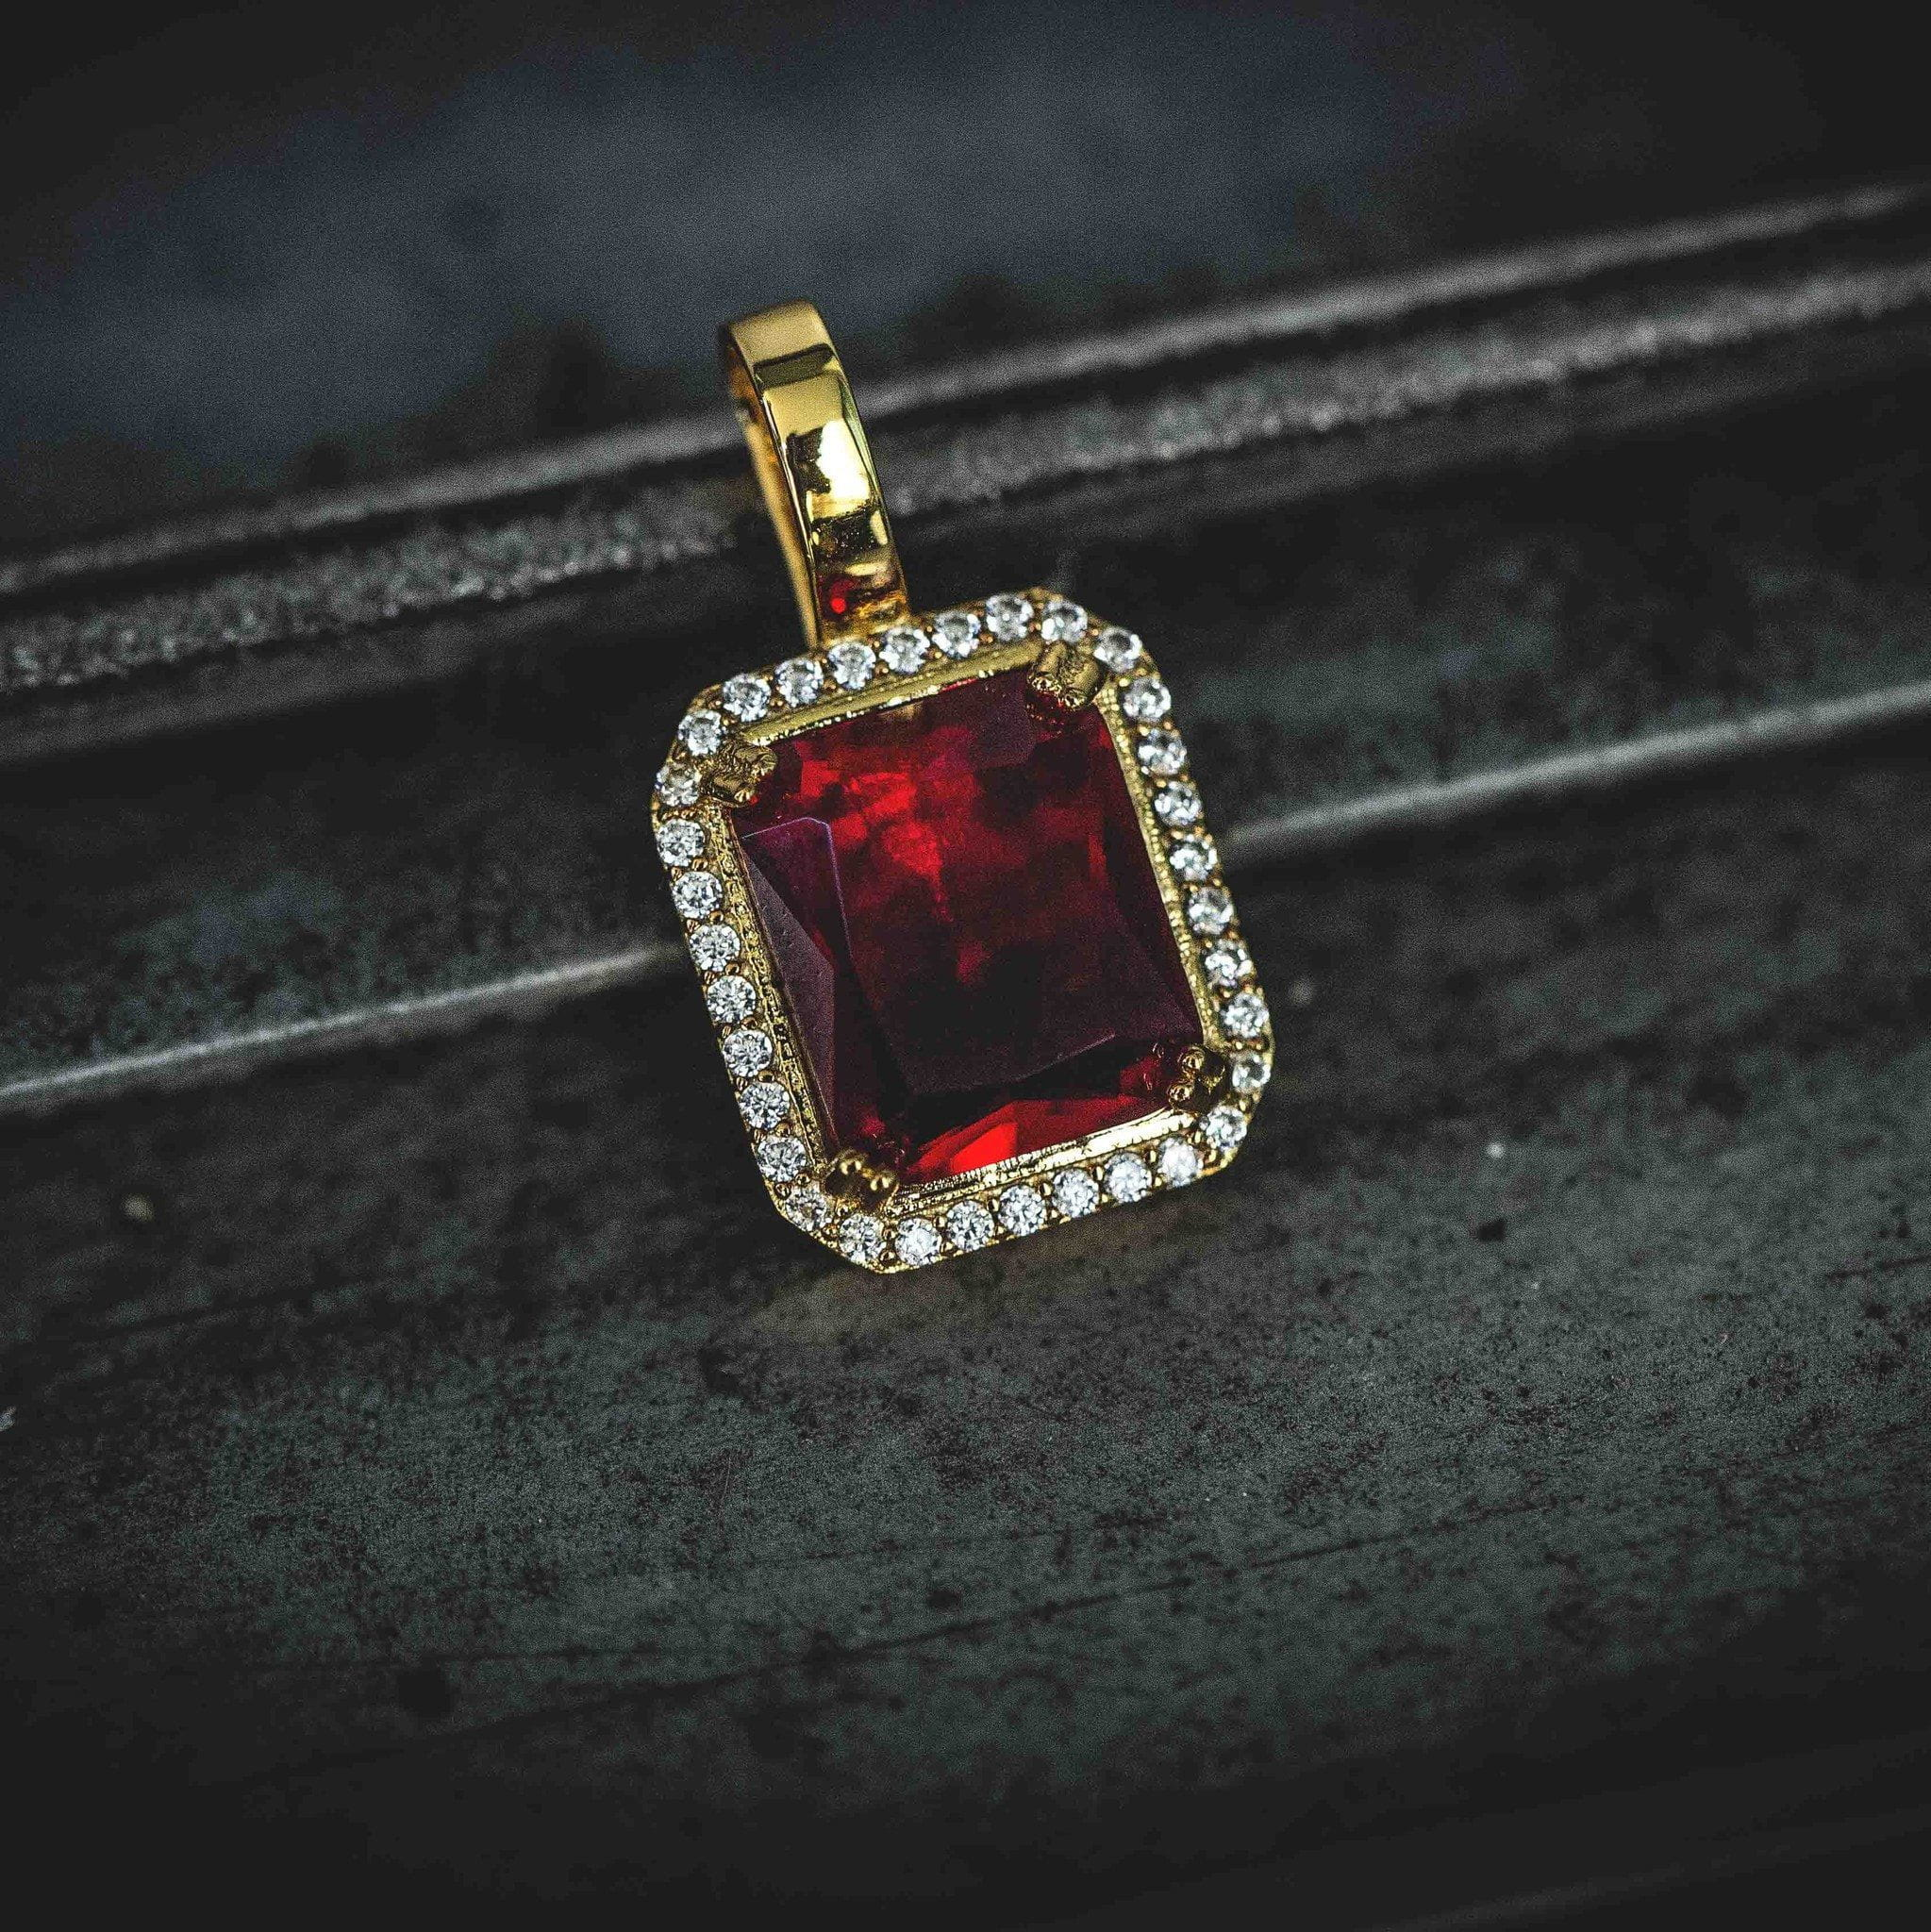 Blood stone the gld shop blood stone the gld shop mozeypictures Images